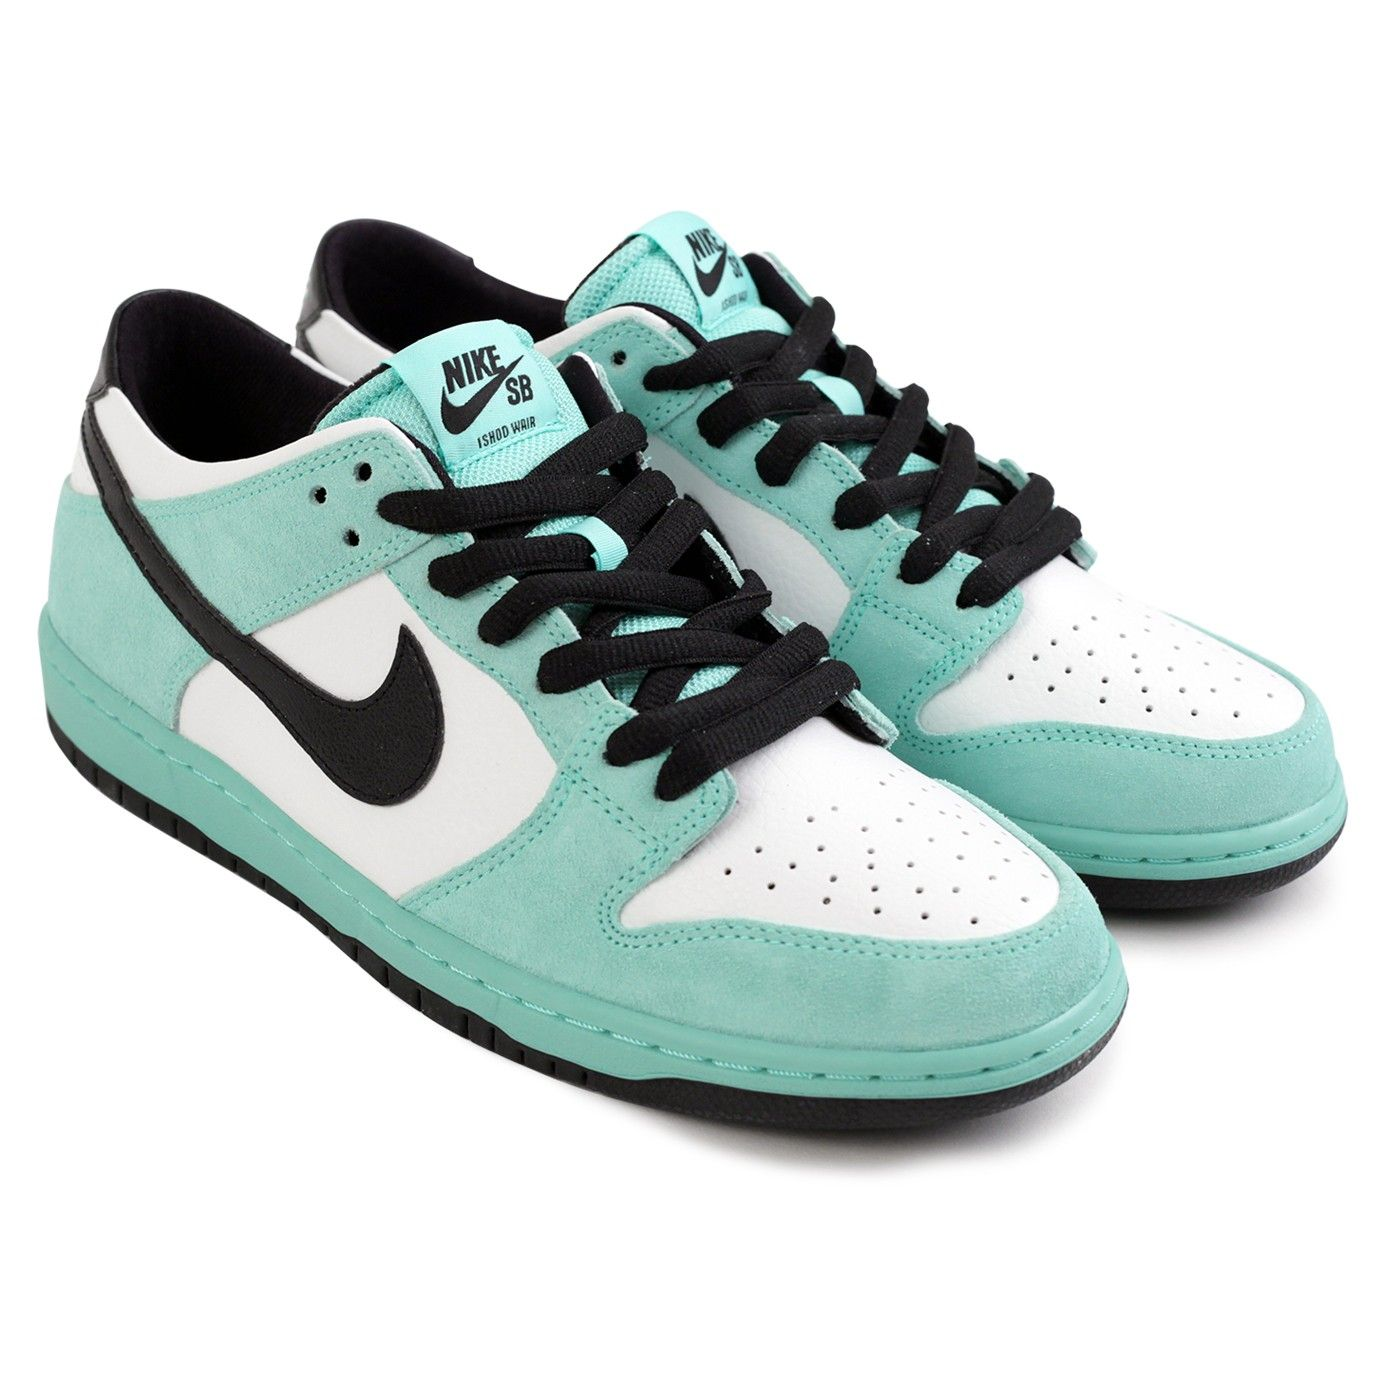 low priced 13a00 8dc82 Dunk Low Pro Ishod Wair Shoes in Green Glow / Black - Summit ...